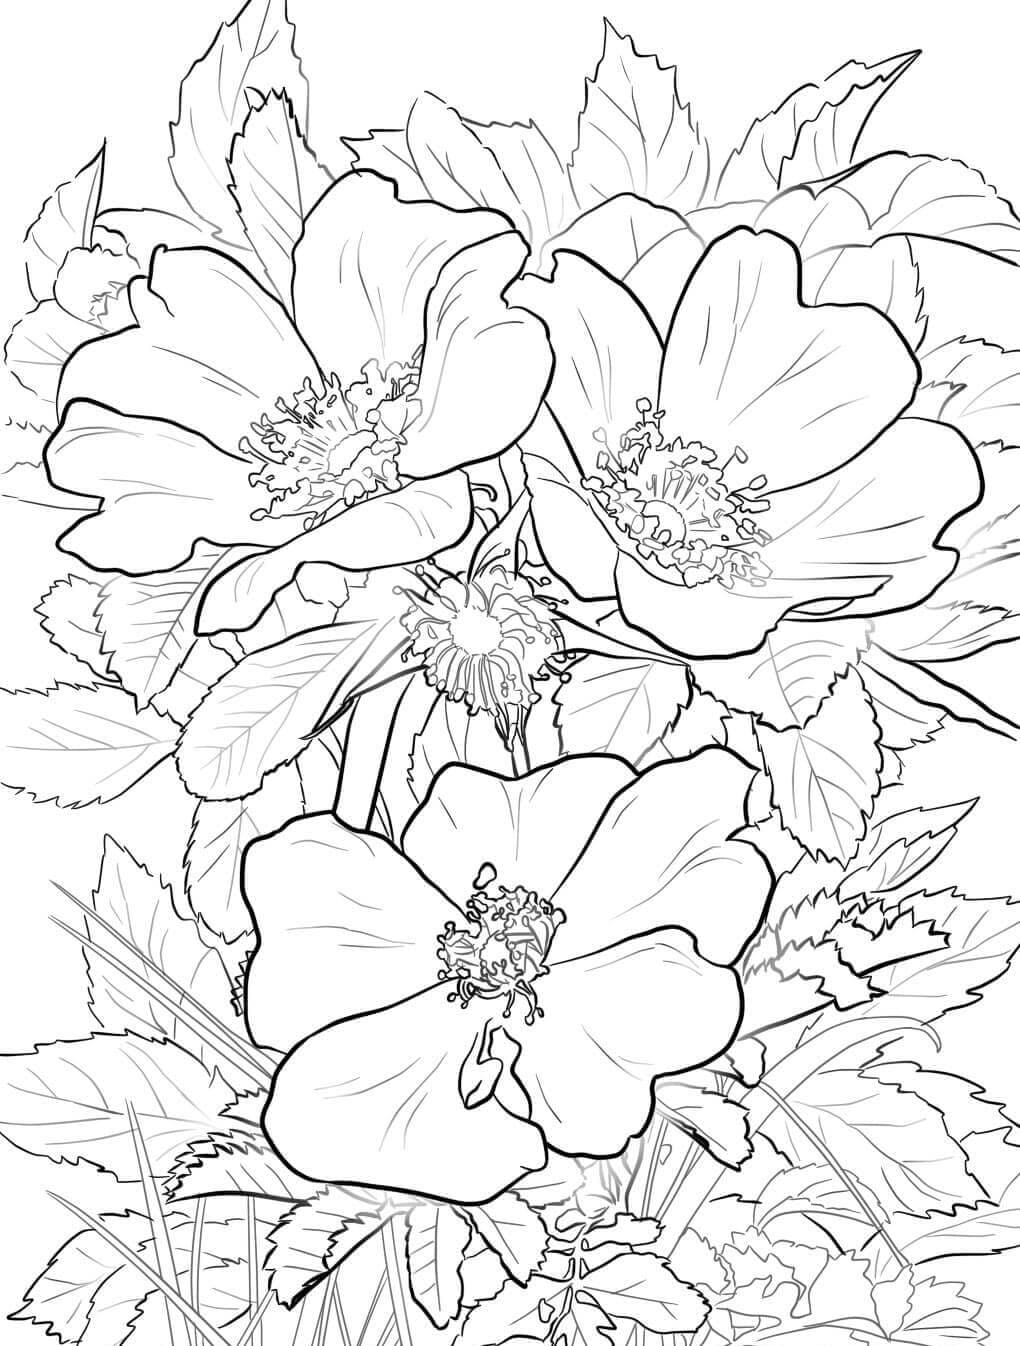 Coloring pages Flowers. Beautiful images for children's creativity